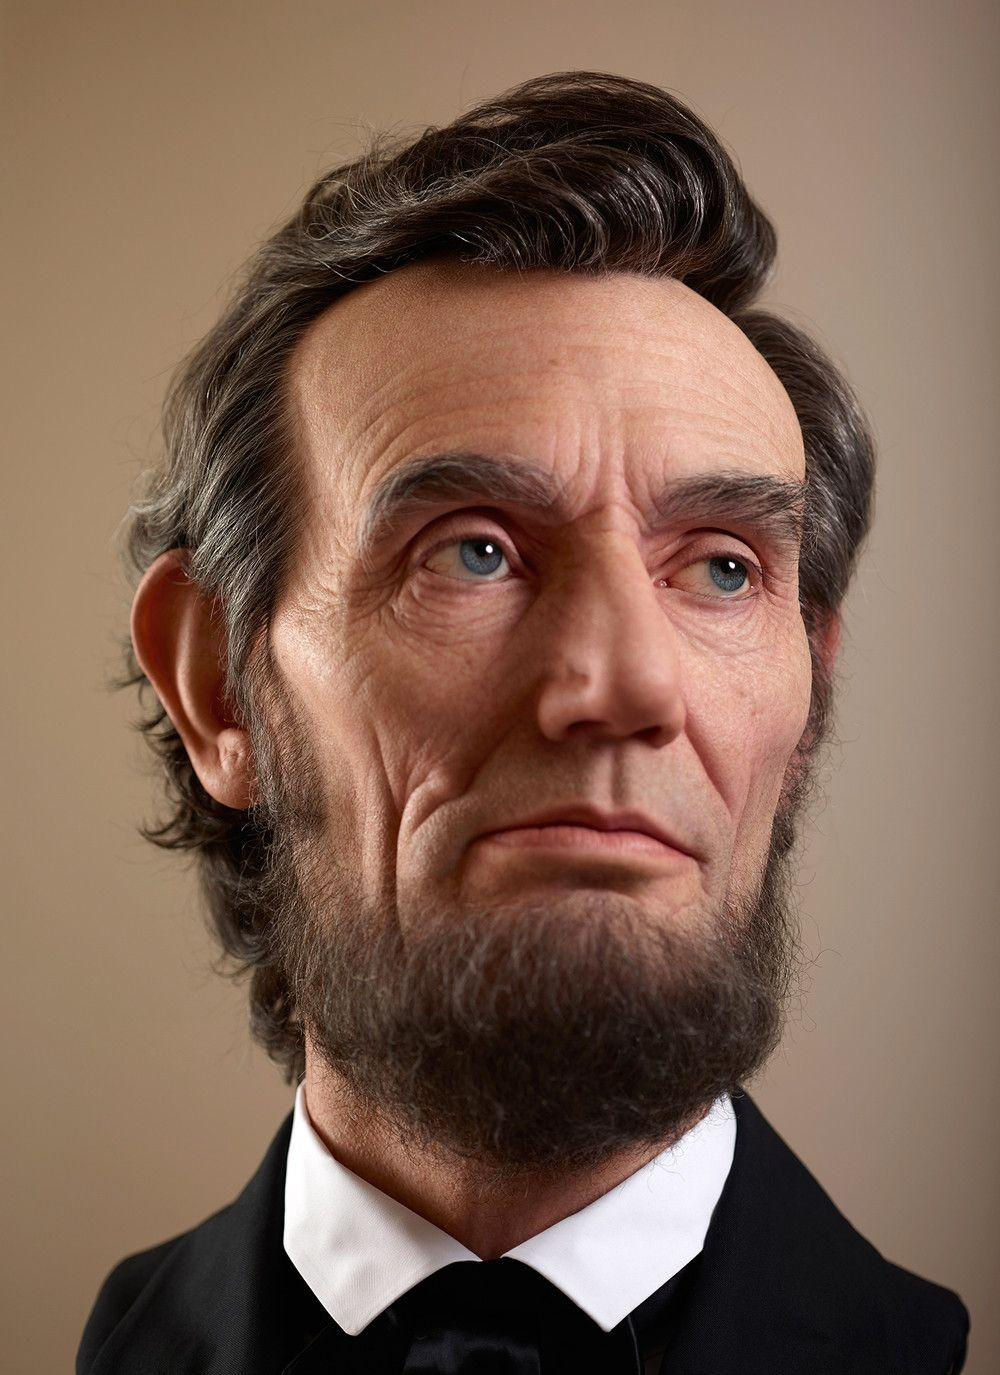 13+ Best HD Abraham Lincoln Wallpapers | feelgrPH